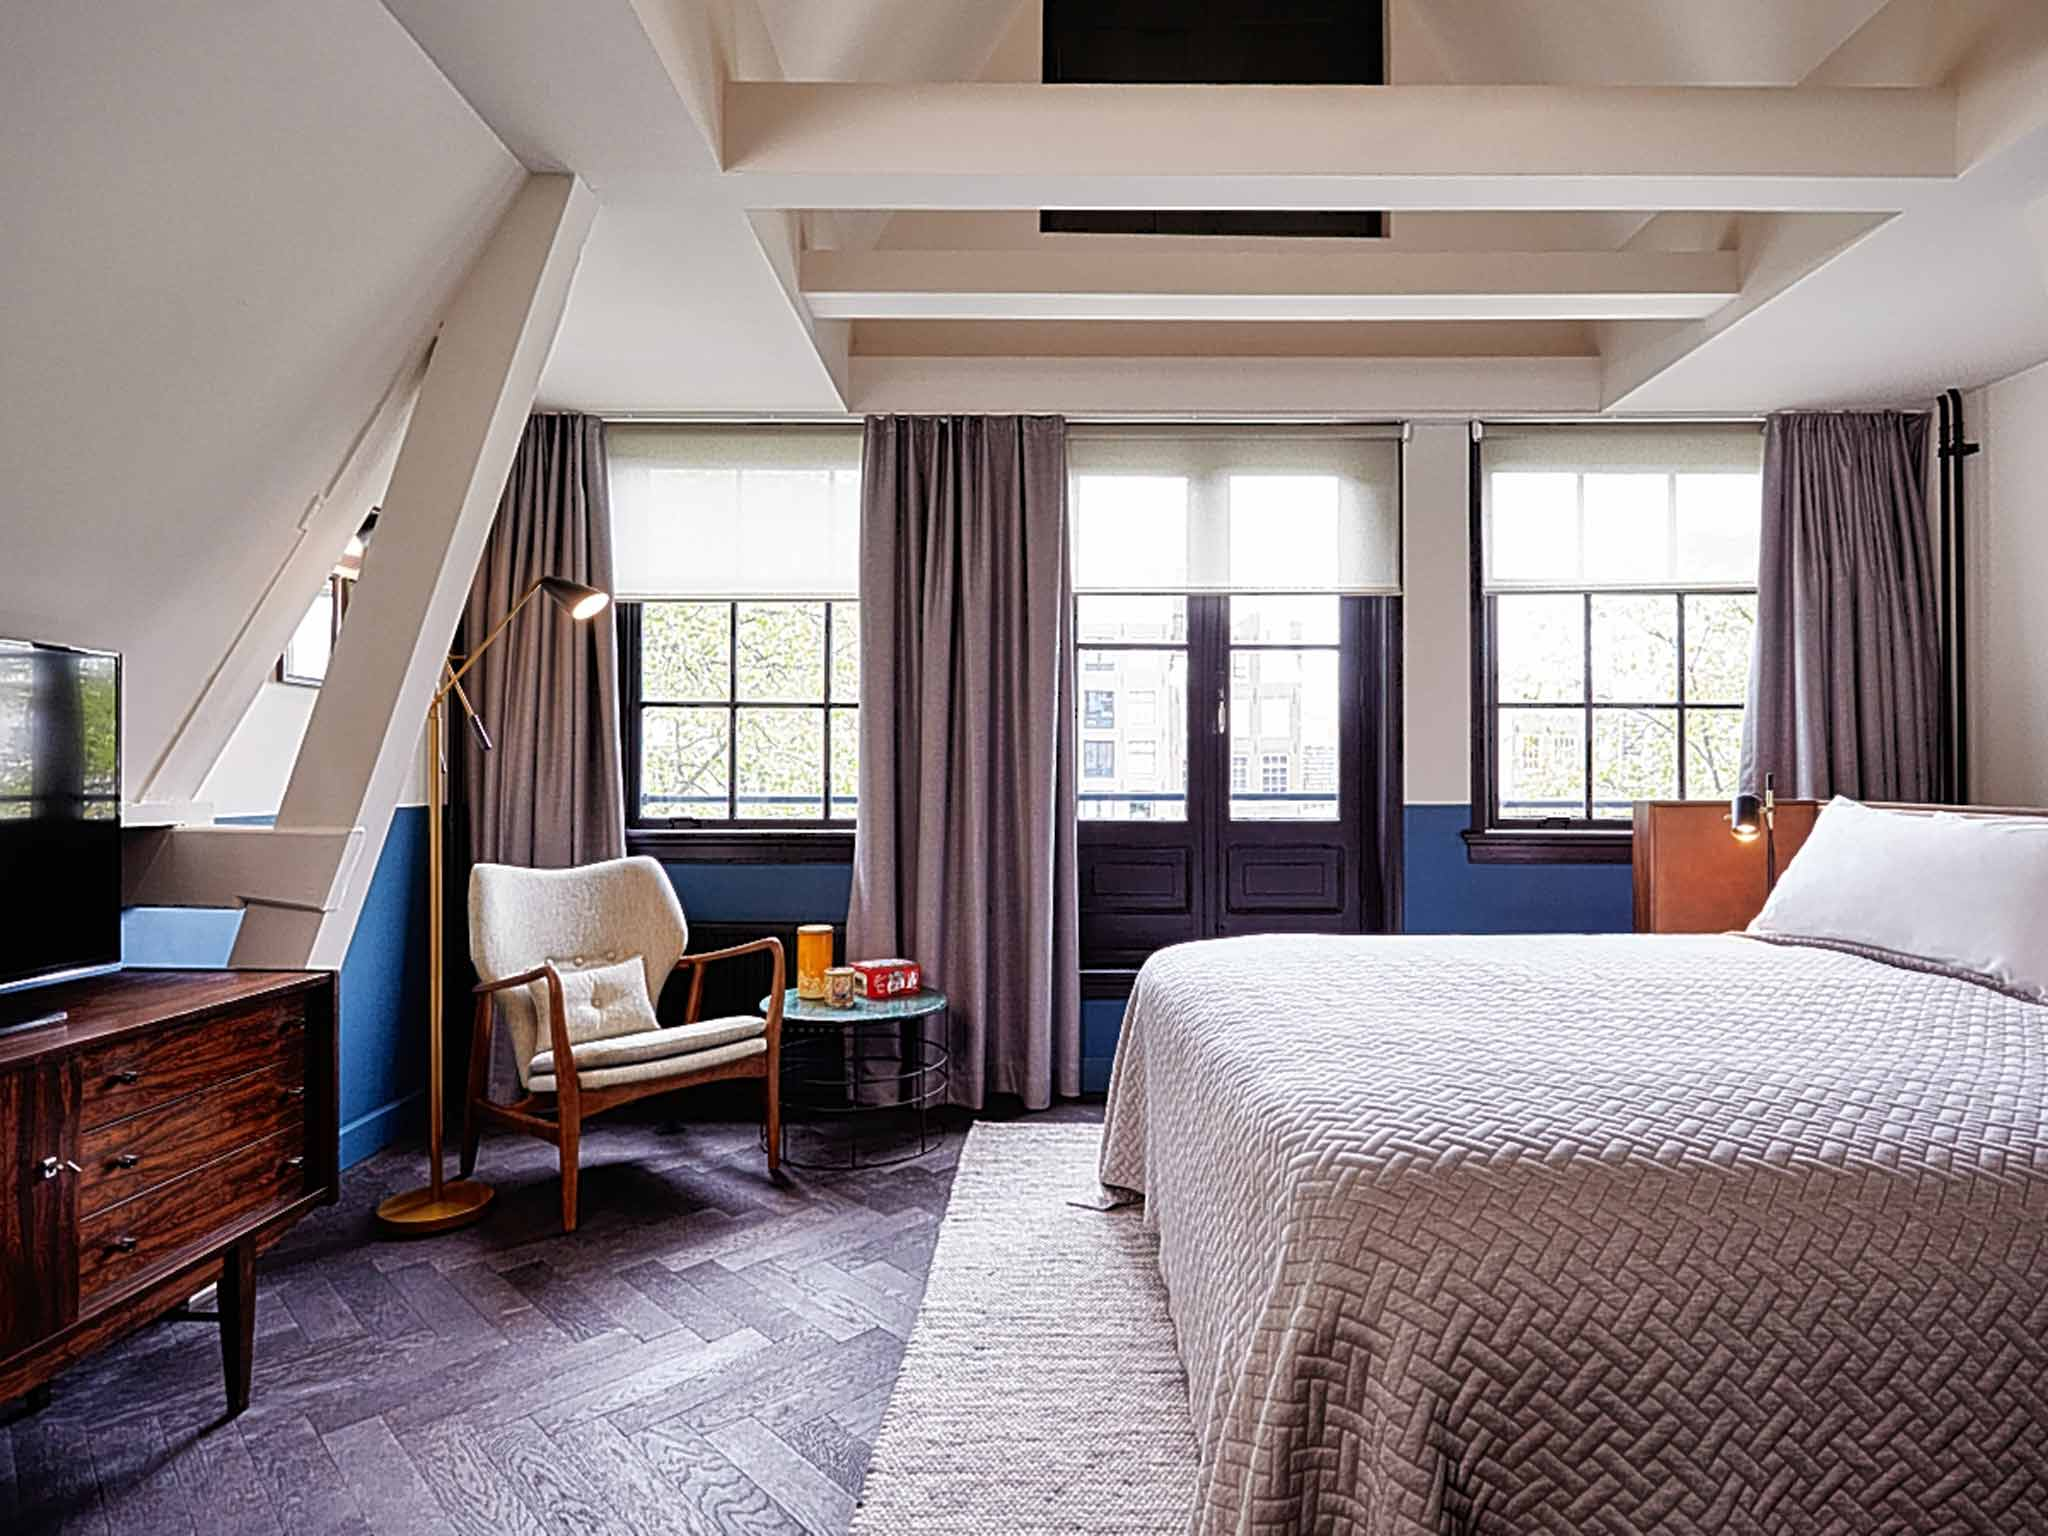 Hotel Hoxton Amsterdam The Hoxton, Amsterdam: Hip Canal Houses That Make All The